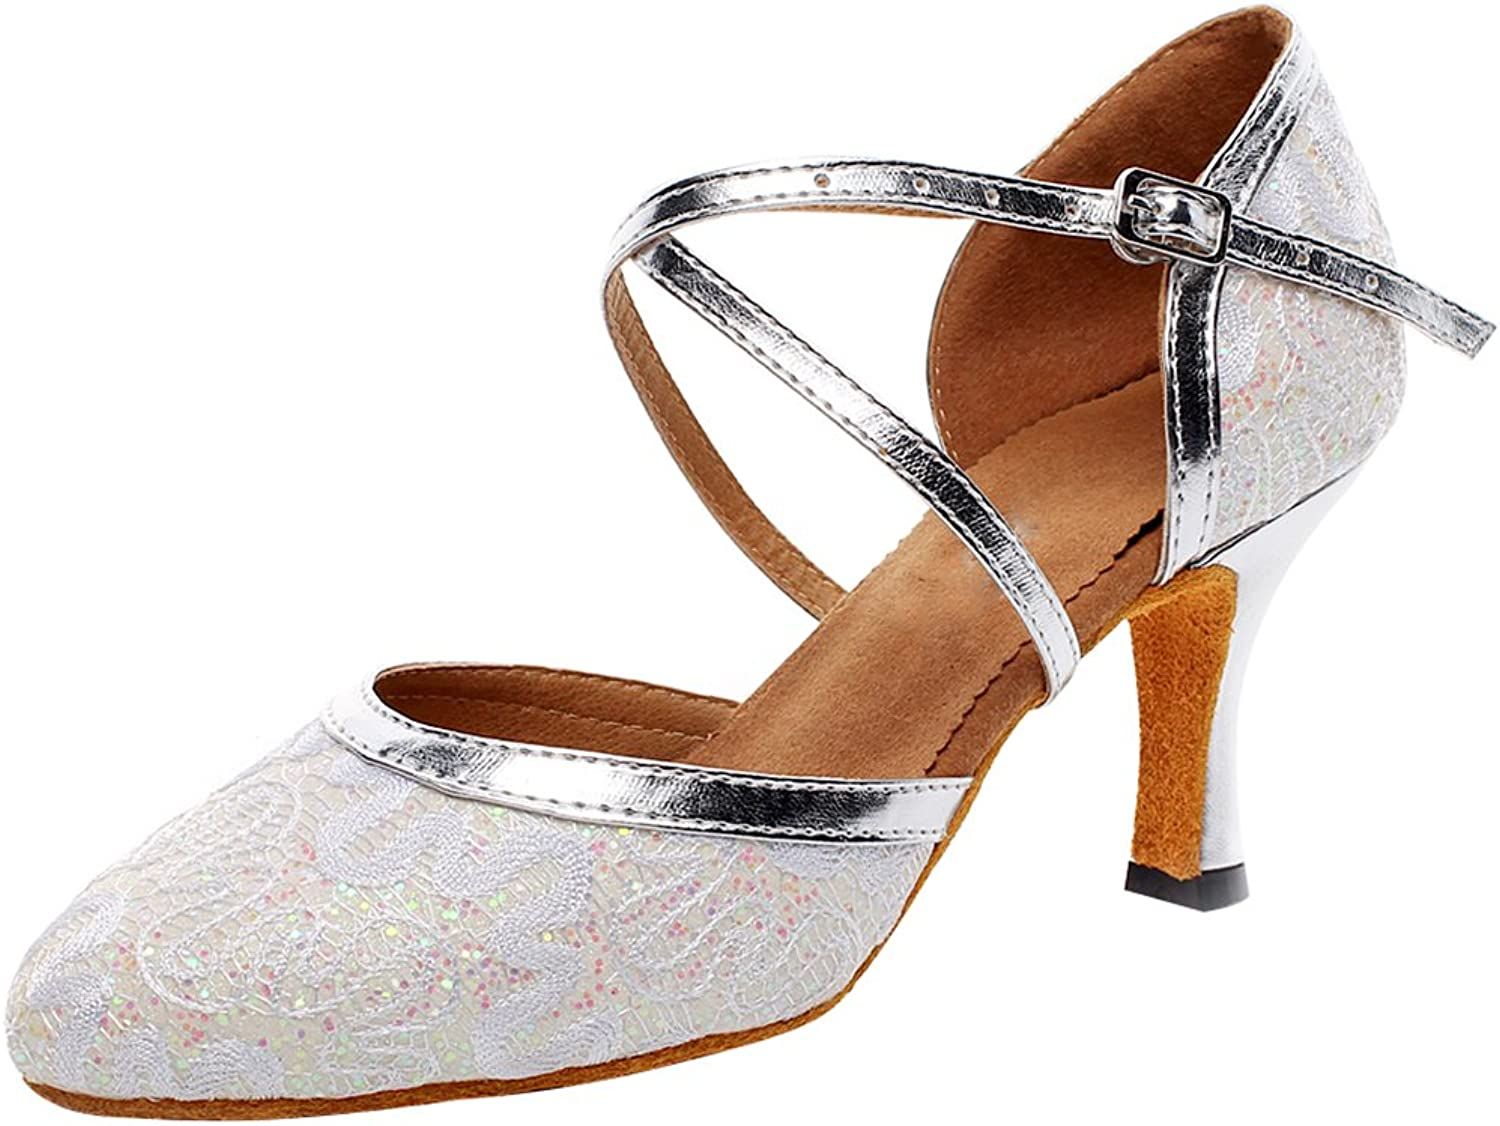 ABBY Products Womens Salsa Dance shoes Latin Tango Cha-Cha Closed Toe Cloth Ankle Strap 7116 Silvery(2IN Thick) US Size7